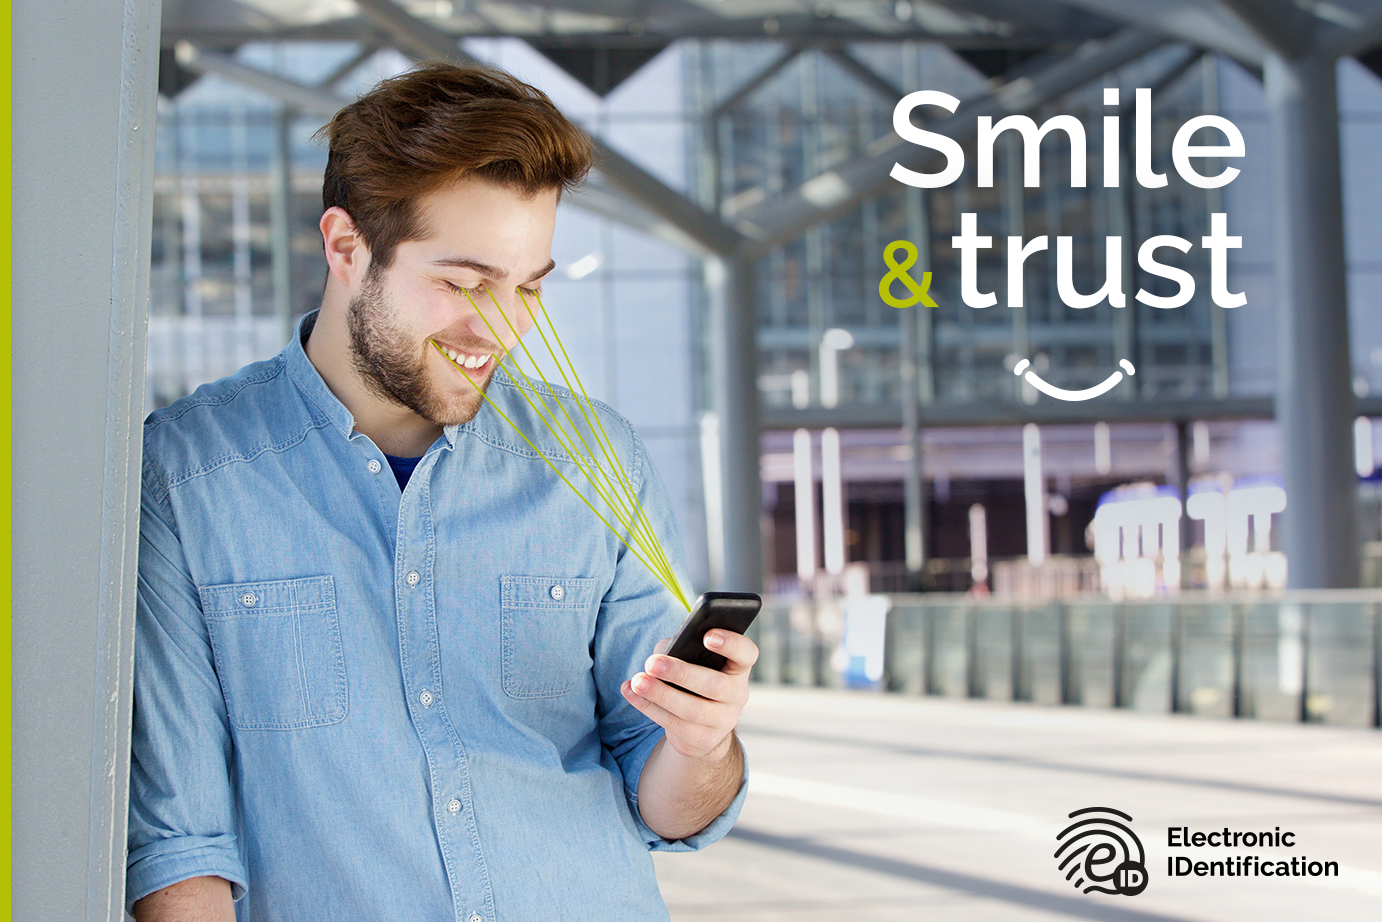 SmileID, the only fully trustworthy authentication service